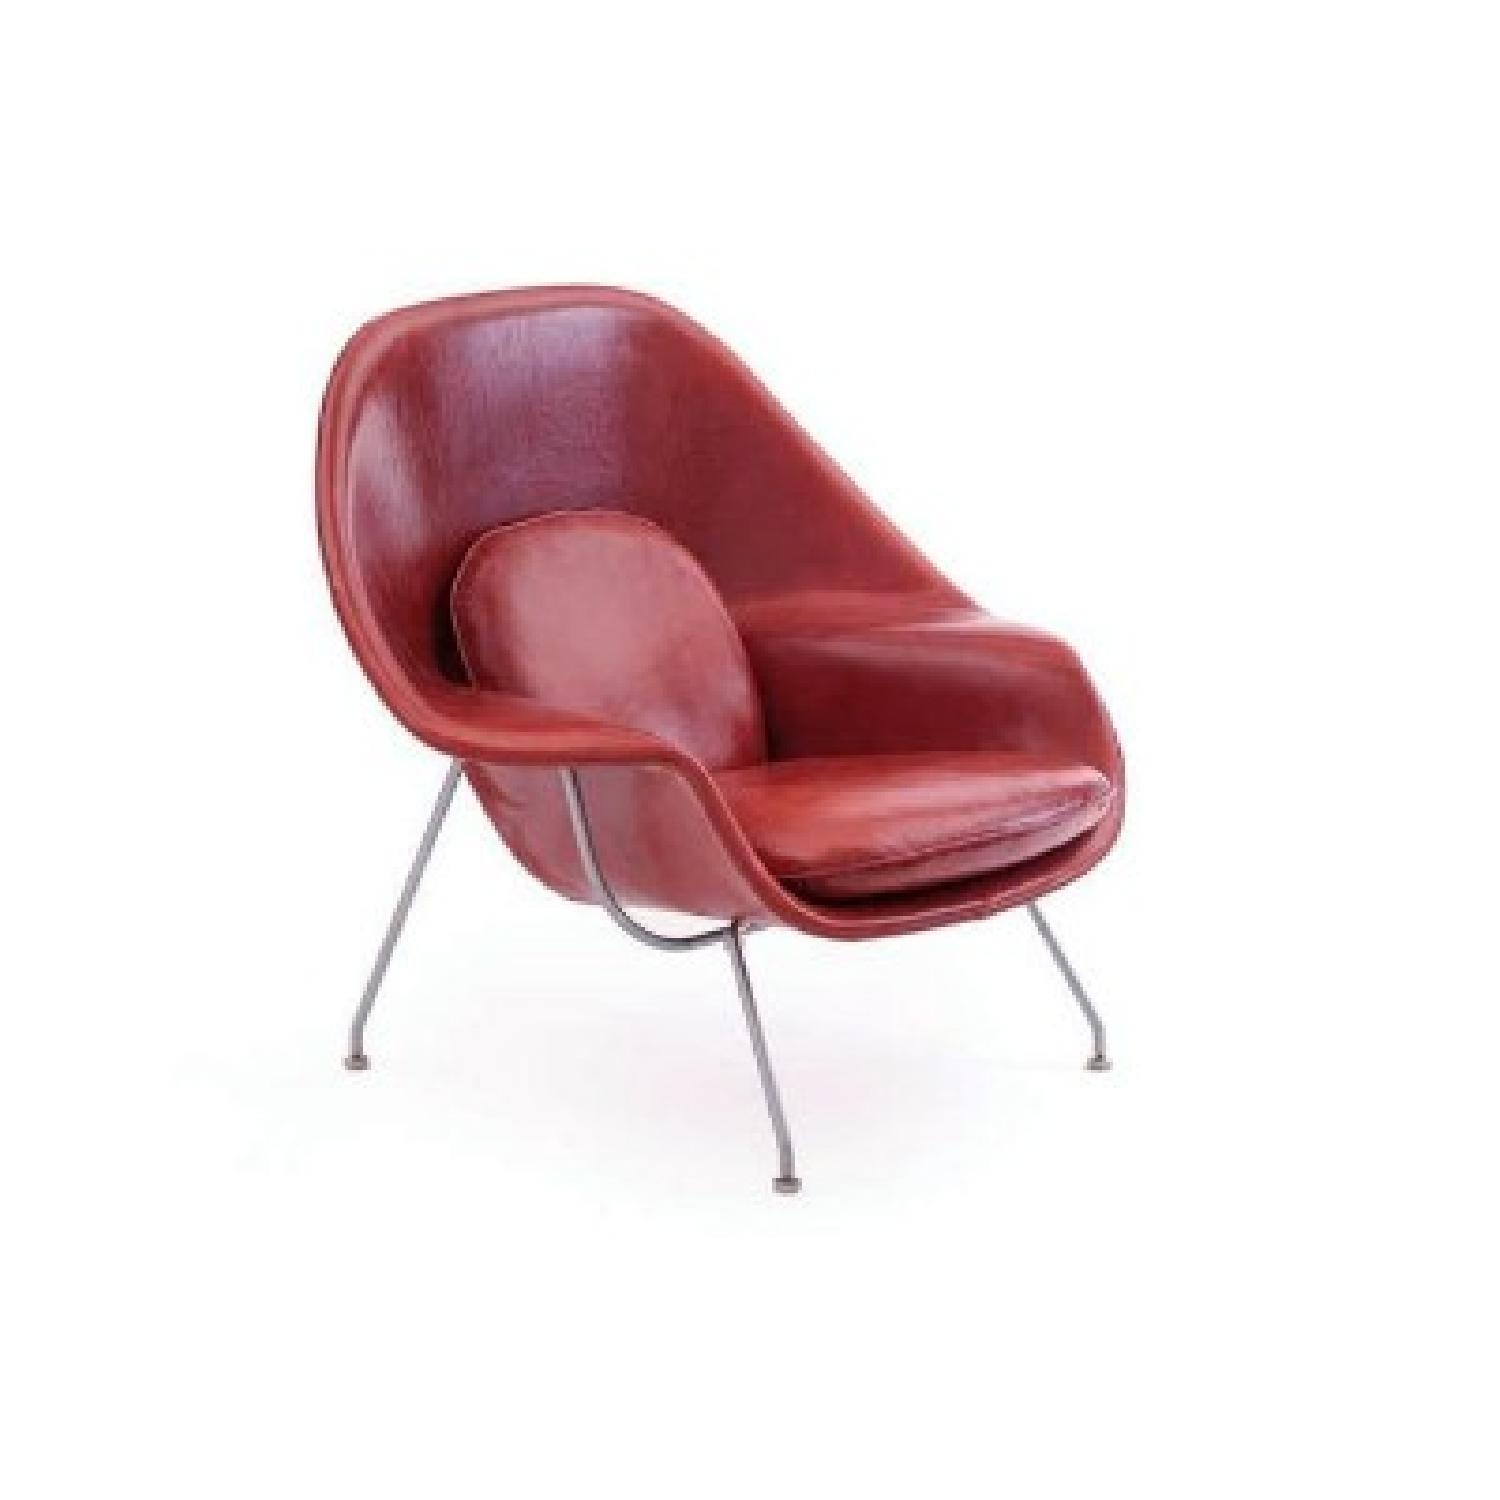 chaise saarinen knoll top midcentury tulip swivel chairs. Black Bedroom Furniture Sets. Home Design Ideas